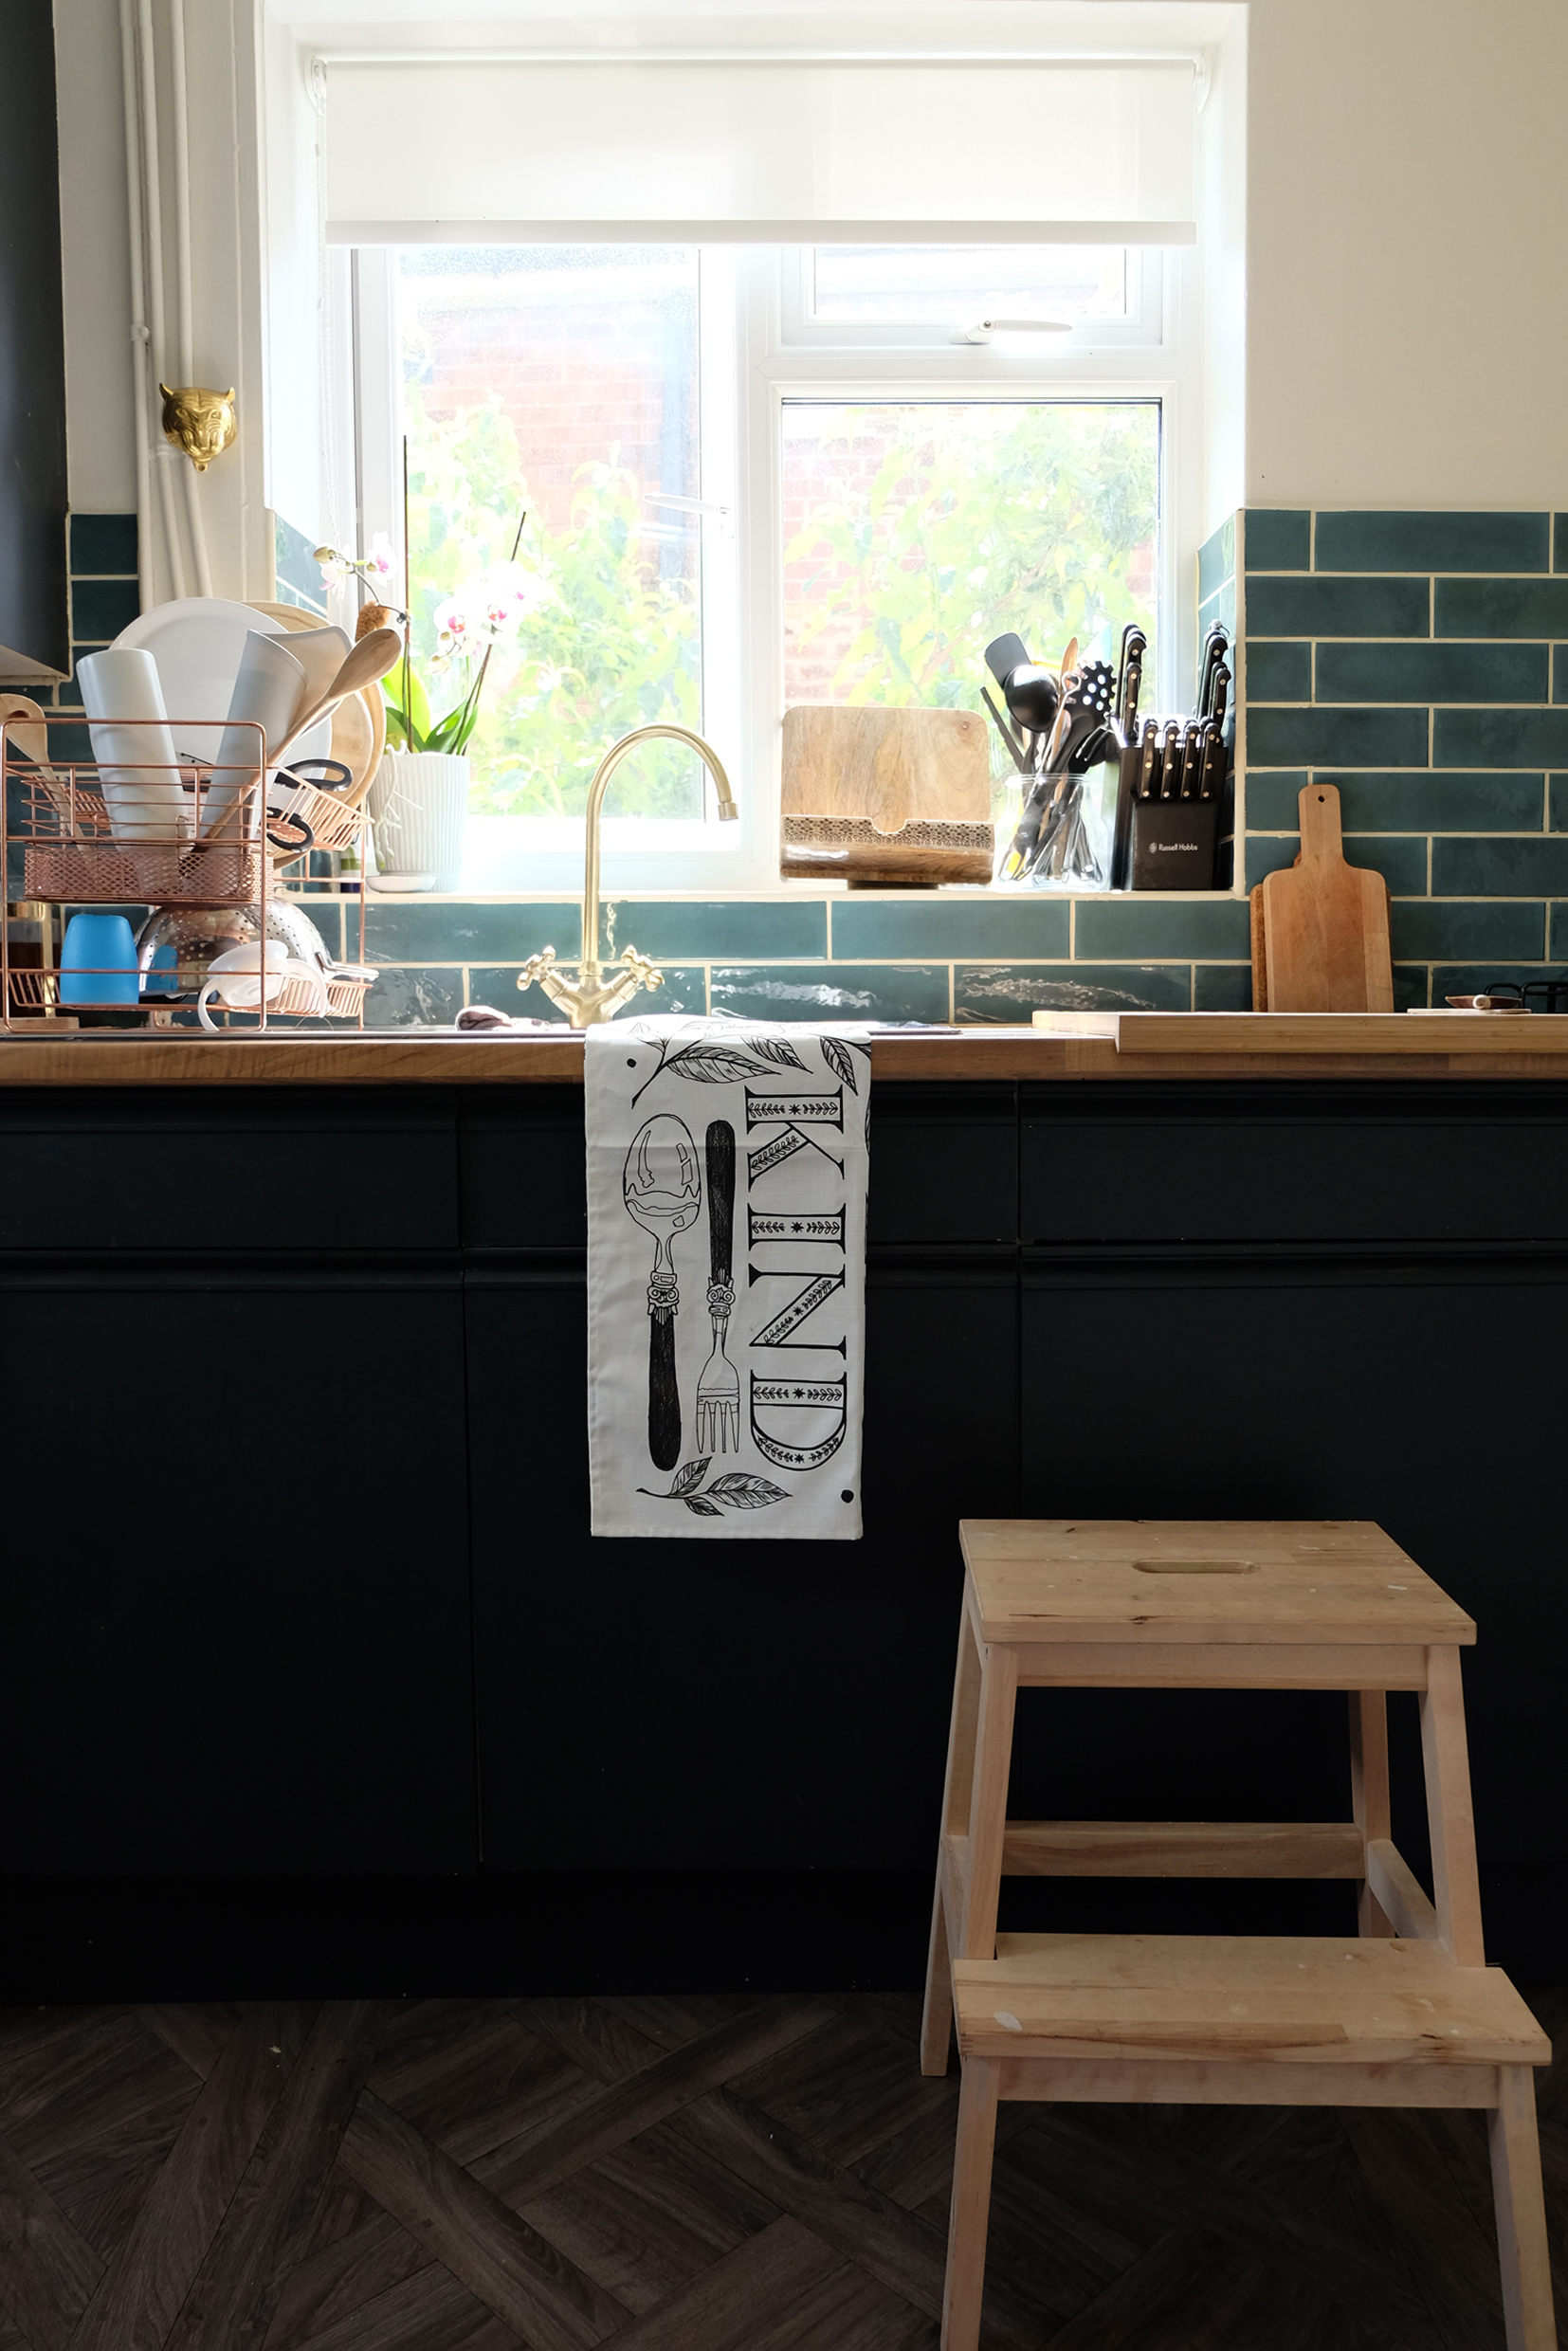 My Eat Kind tea towels are neutral, making them a perfect accessory for any kitchen style.